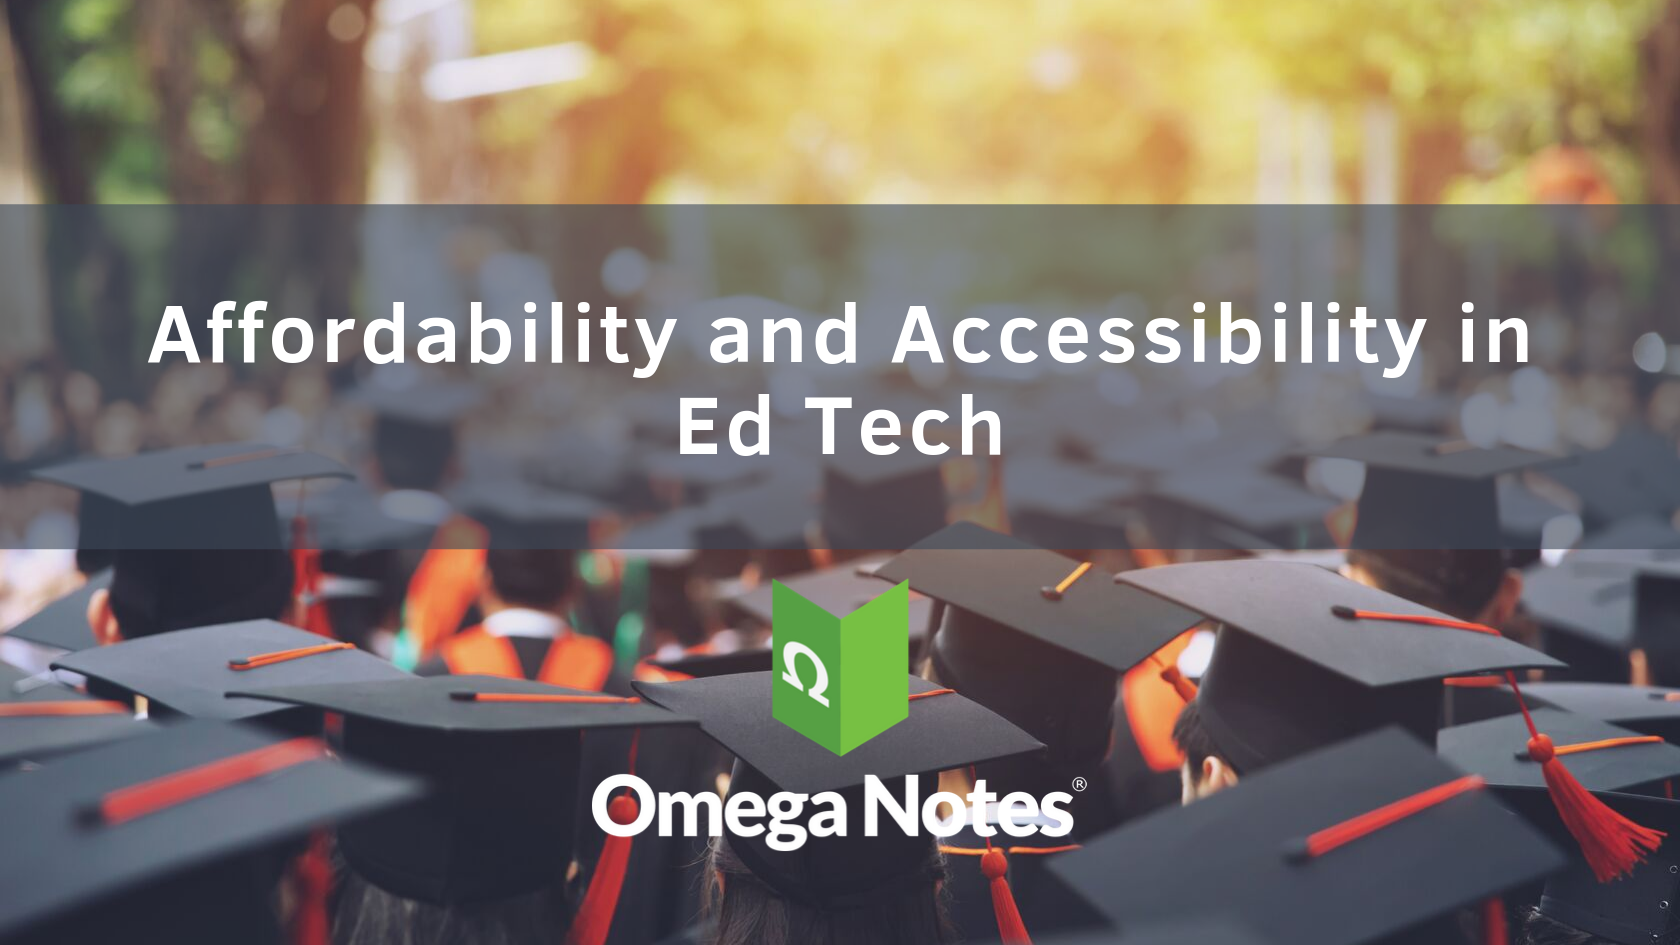 Affordability and Accessibility in Ed Tech